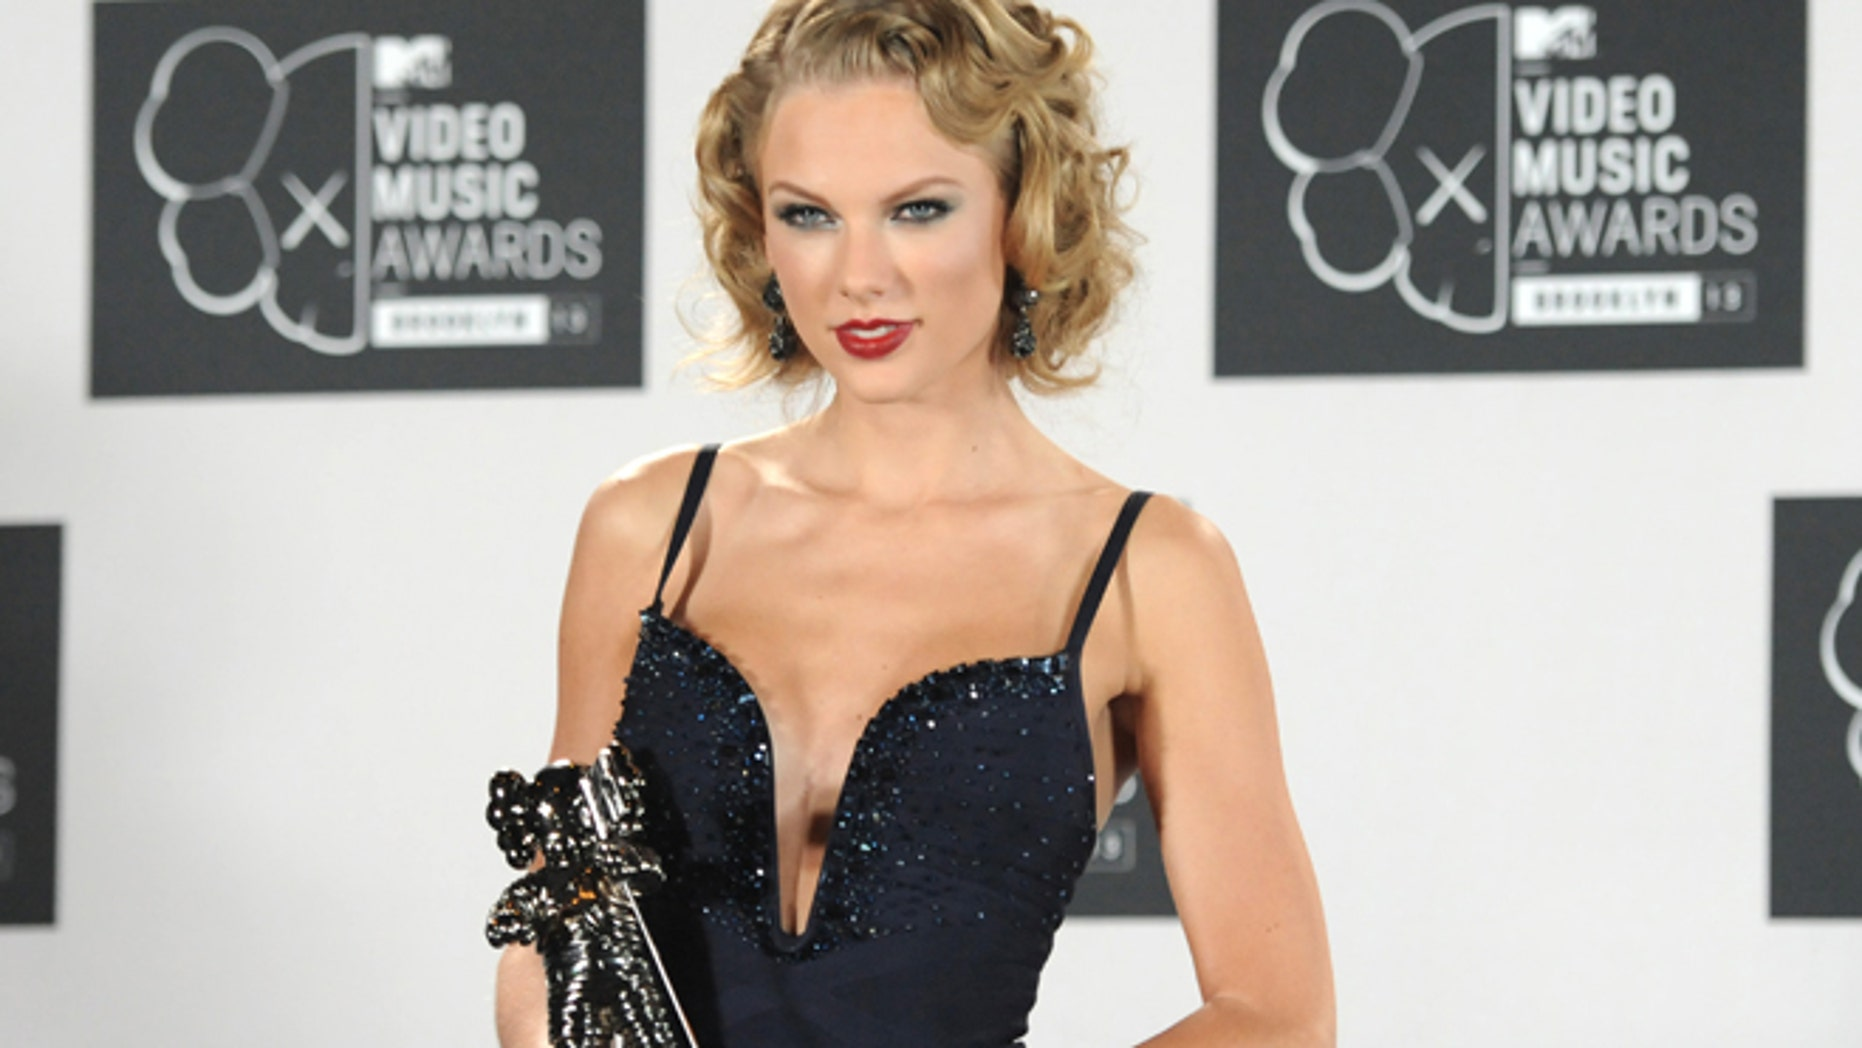 """Taylor Swift poses backstage with the award for Best Female Video for """"I Knew You Were Trouble"""" at the MTV Video Music Awards on Sunday, Aug. 25, 2013, at the Barclays Center in the Brooklyn borough of New York."""